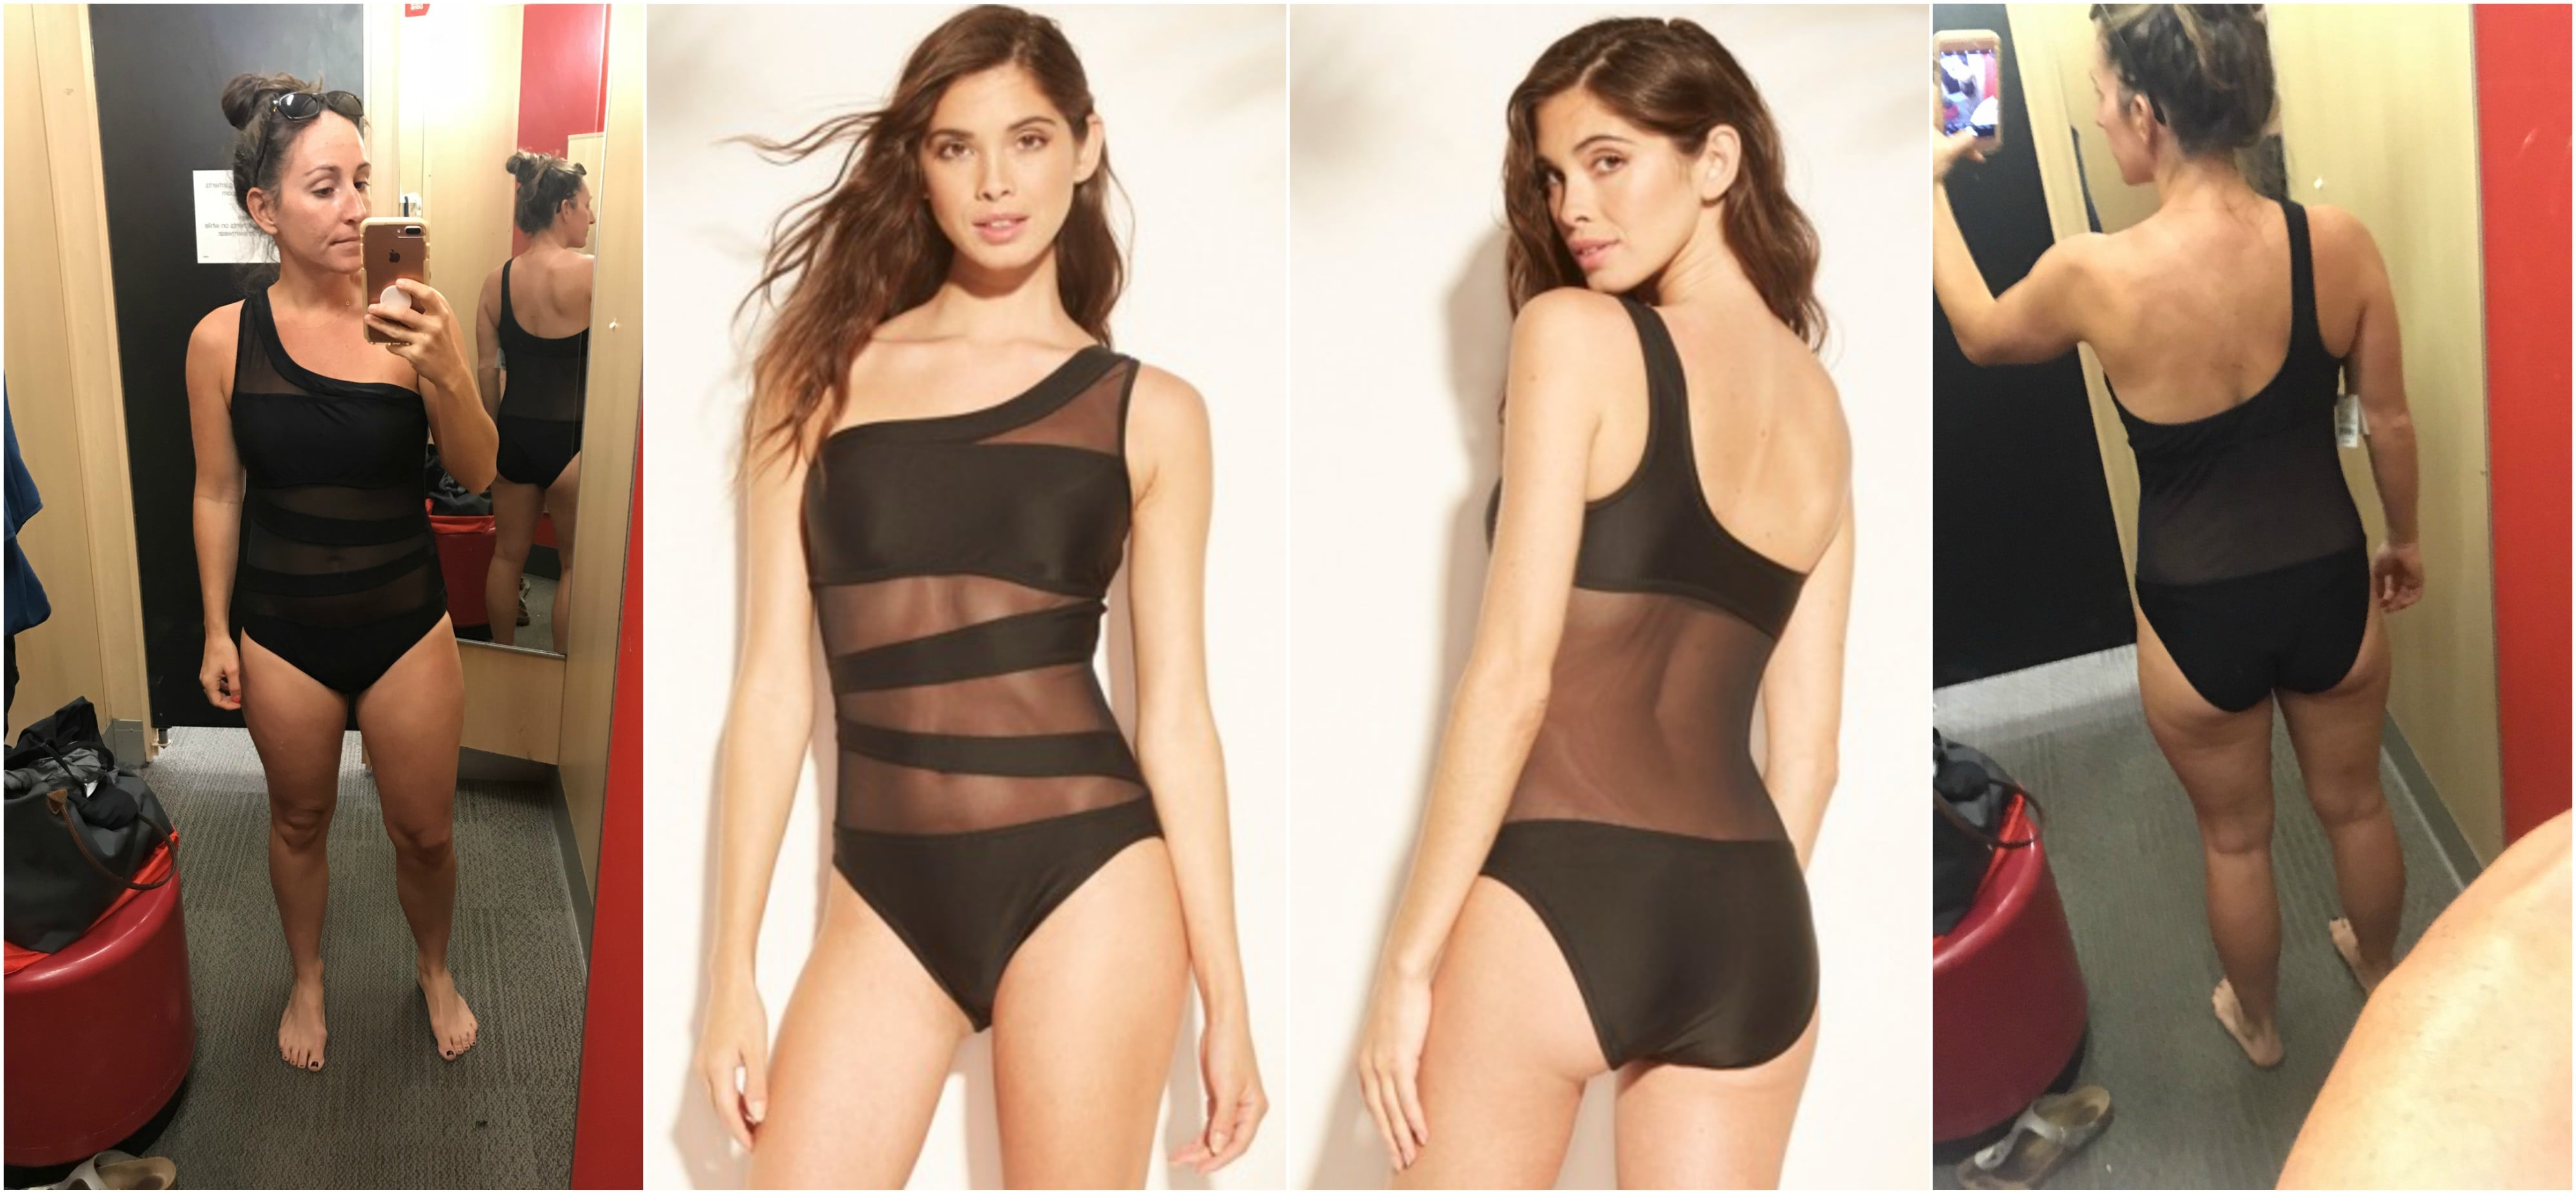 91449c64b06 Black Mesh One Piece Swimsuit - THE OFFICIAL GUIDE TO TARGET SWIMWEAR 2019  - Target Swimsuits